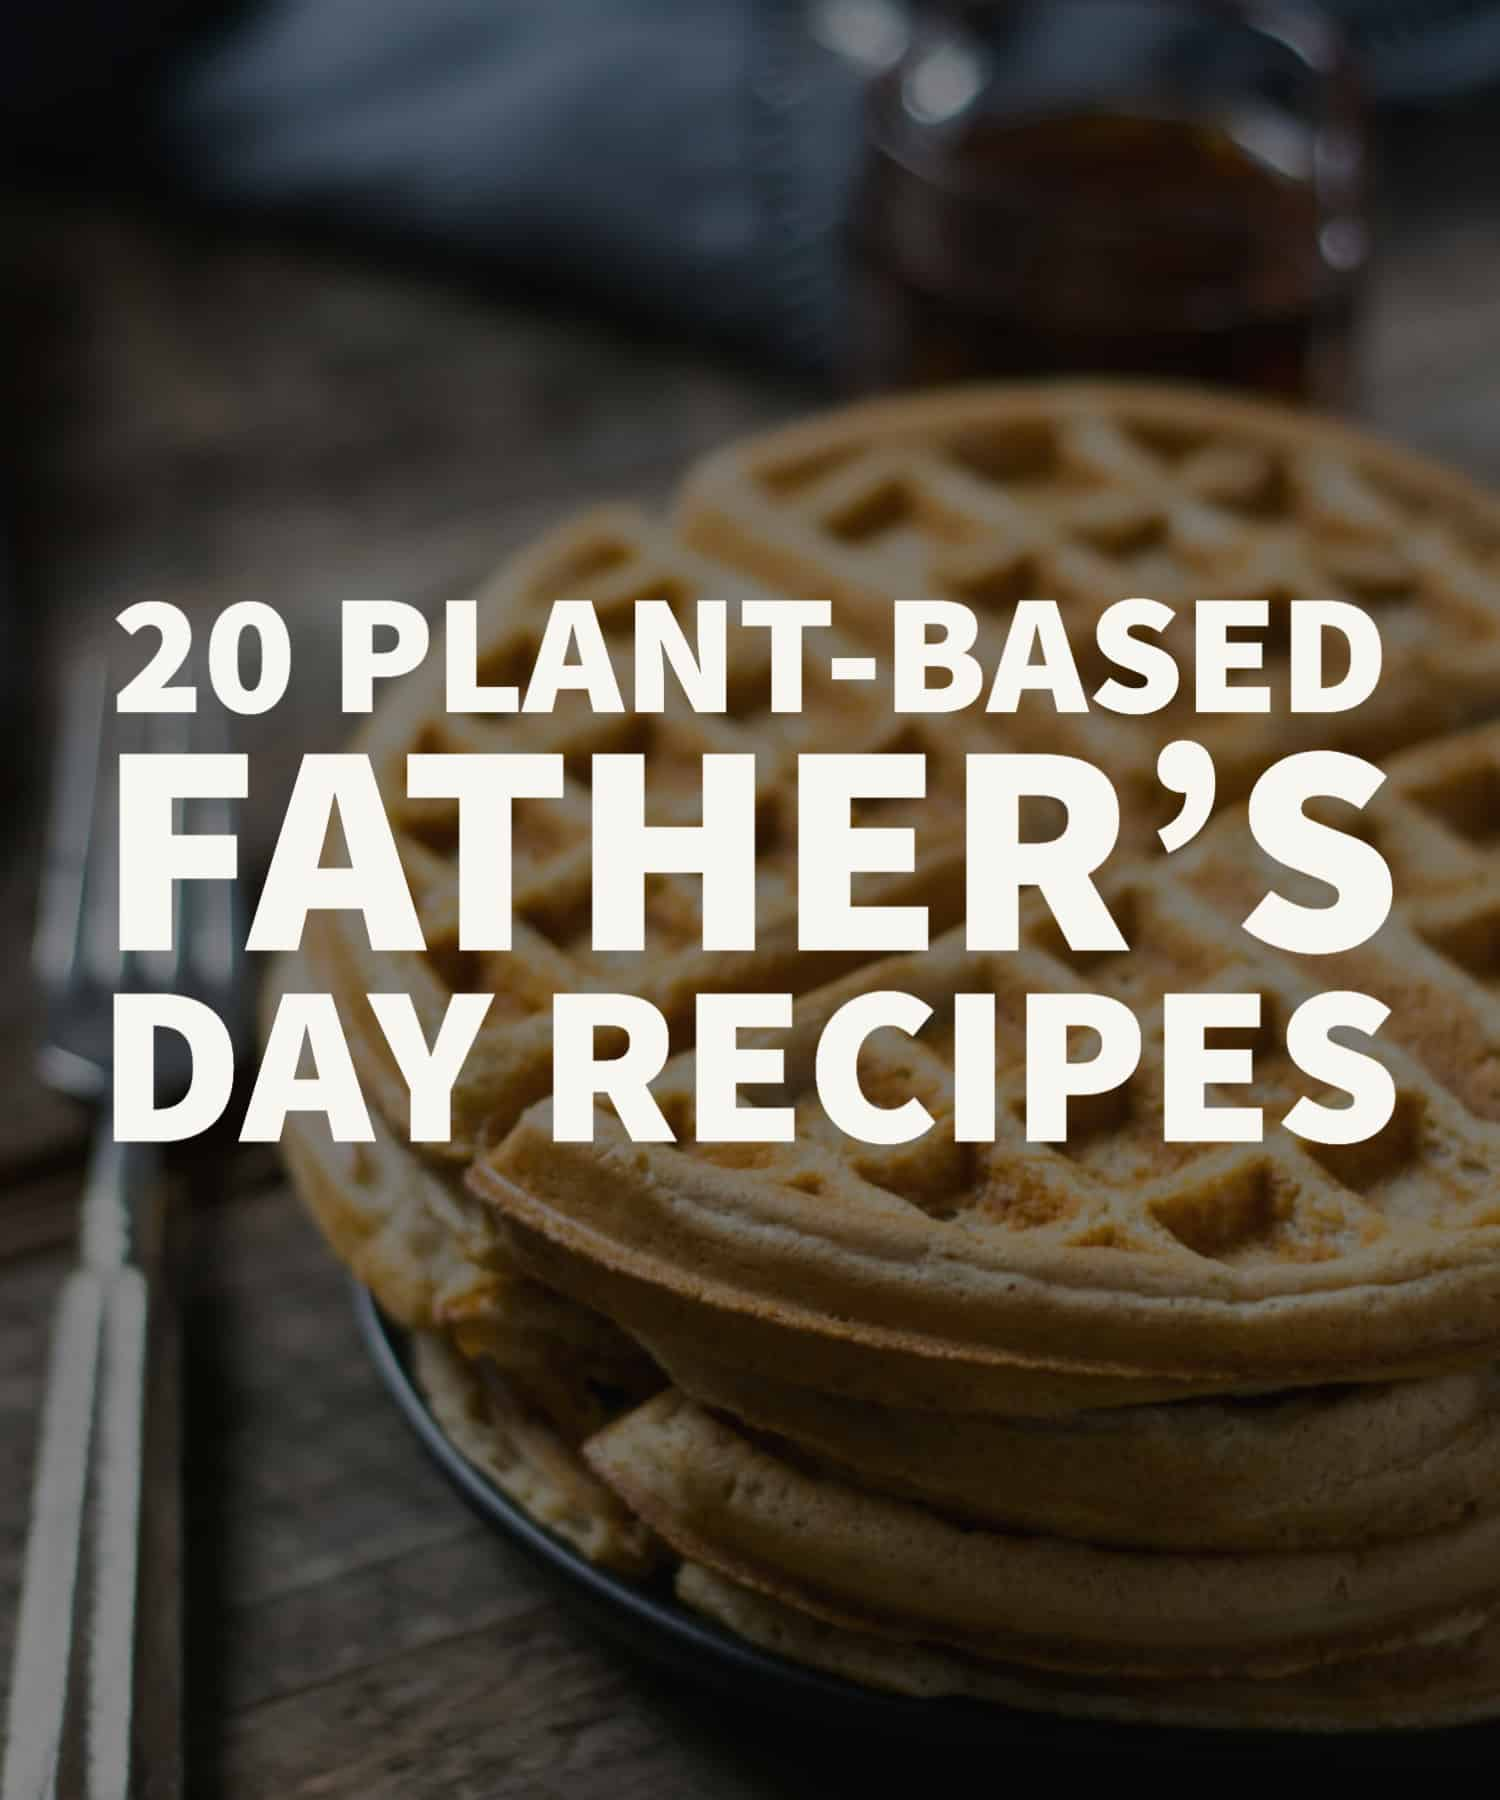 father's day recipes header